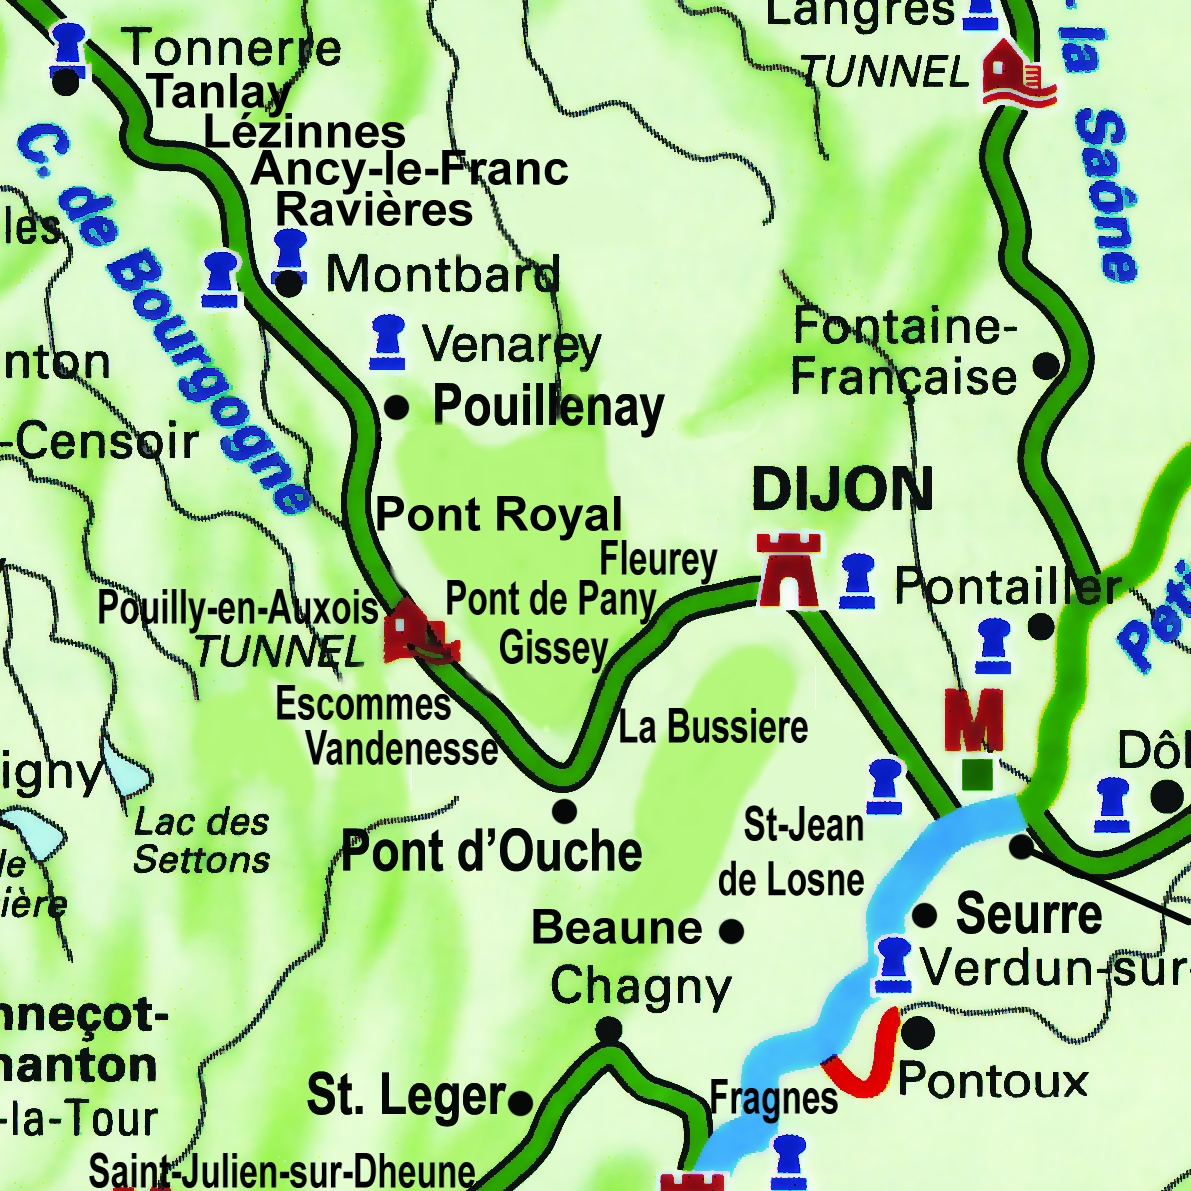 Apres Tout's route through Southern Burgundy, from St. Jean de Losne to Pont D''Ouche on the Canal de Bourgogne.